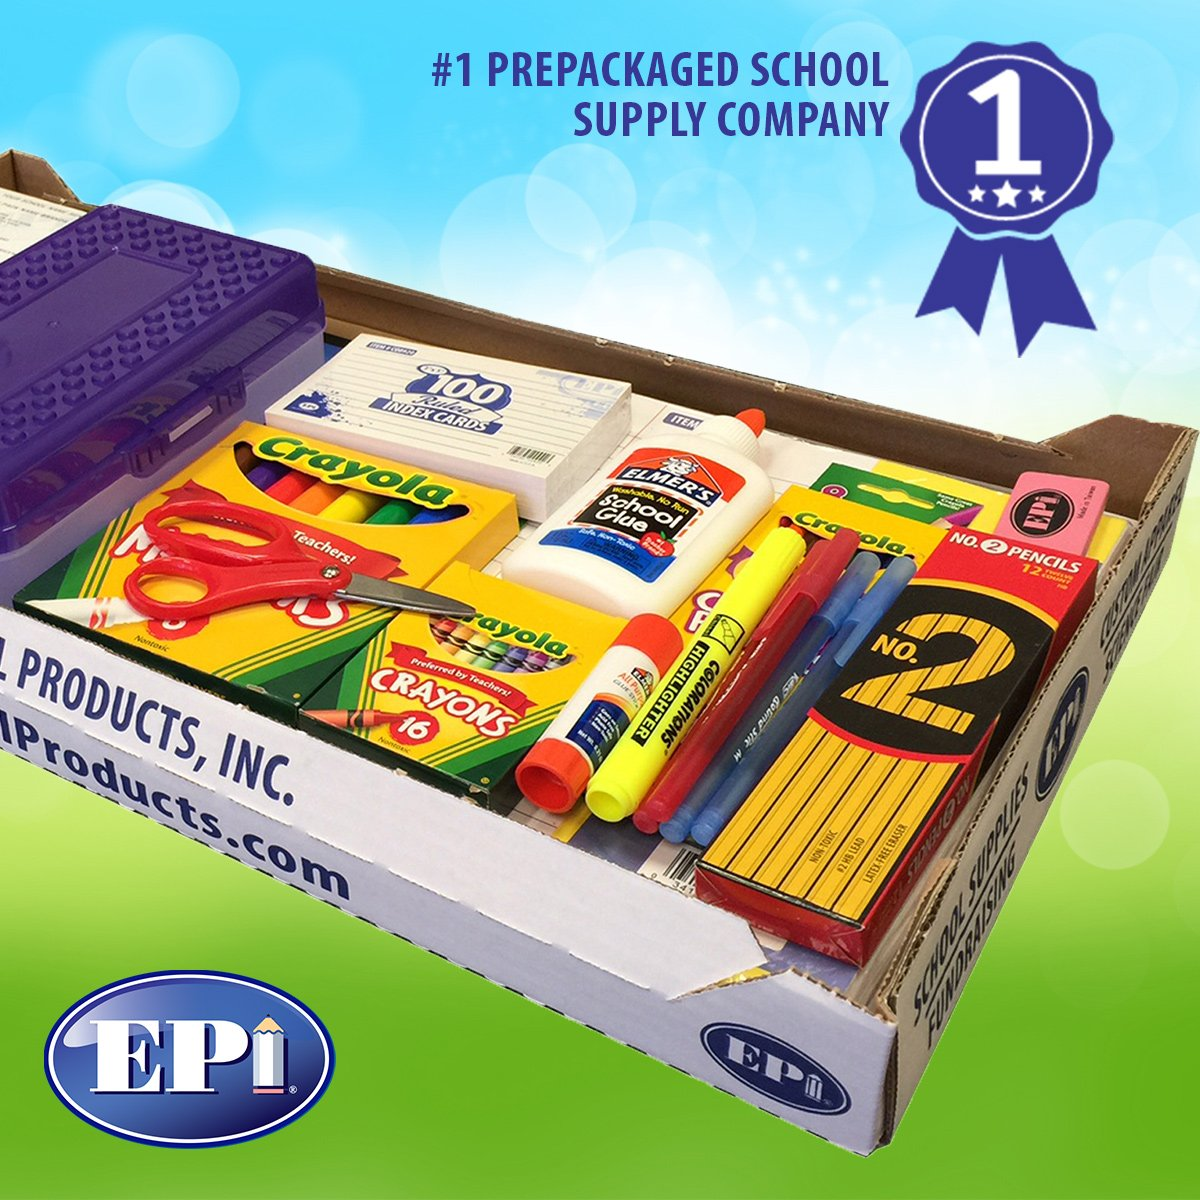 EPI School Supply Orders